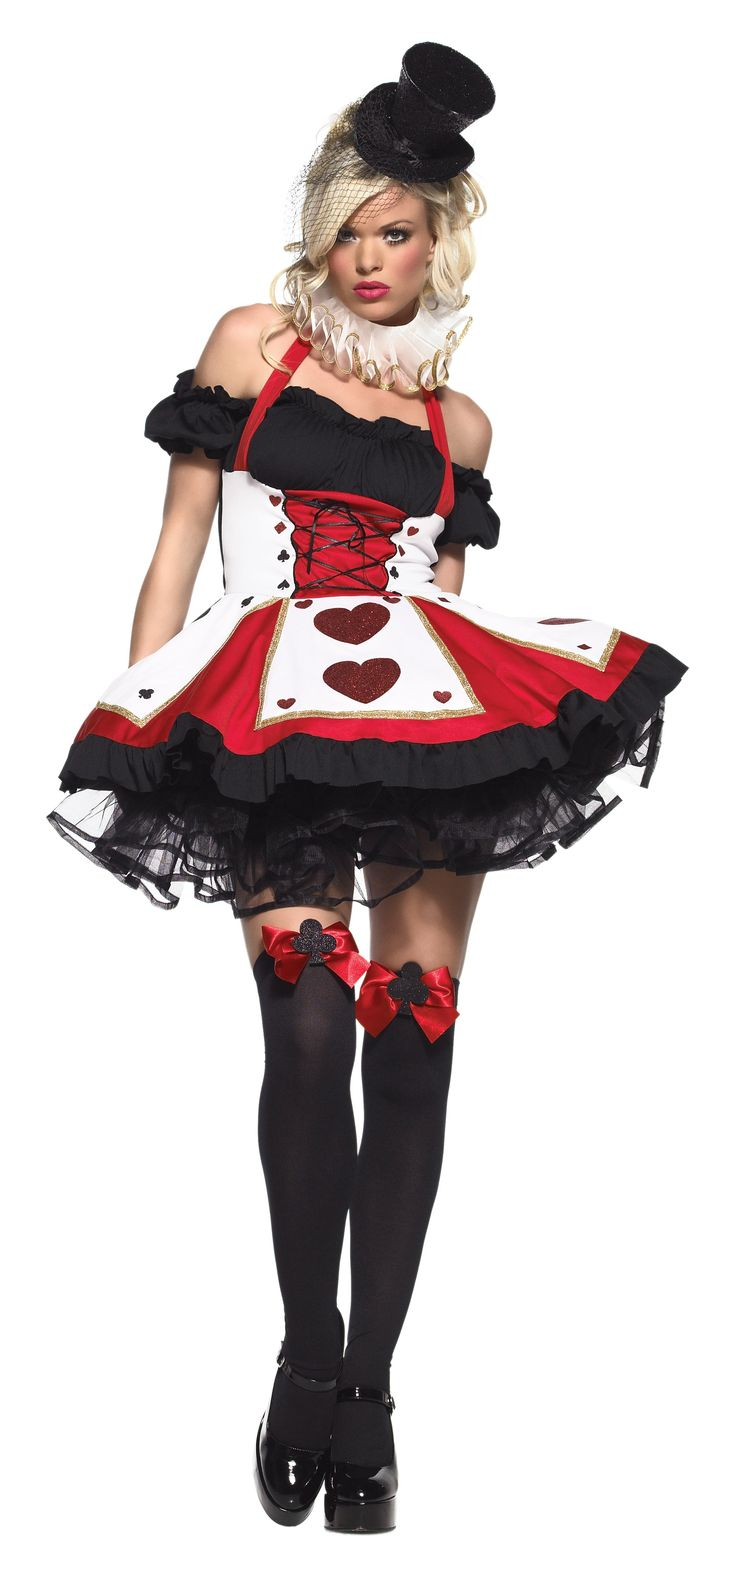 Queen of Hearts ...also sold on ebay http://www.ebay.com/itm/Pretty-Playing-Card-Leg-Avenue-Costume-XS-SM-ML-XL-1X-2X-3X-4X-/200661736587?pt=US_Costumes==item746c274c9a